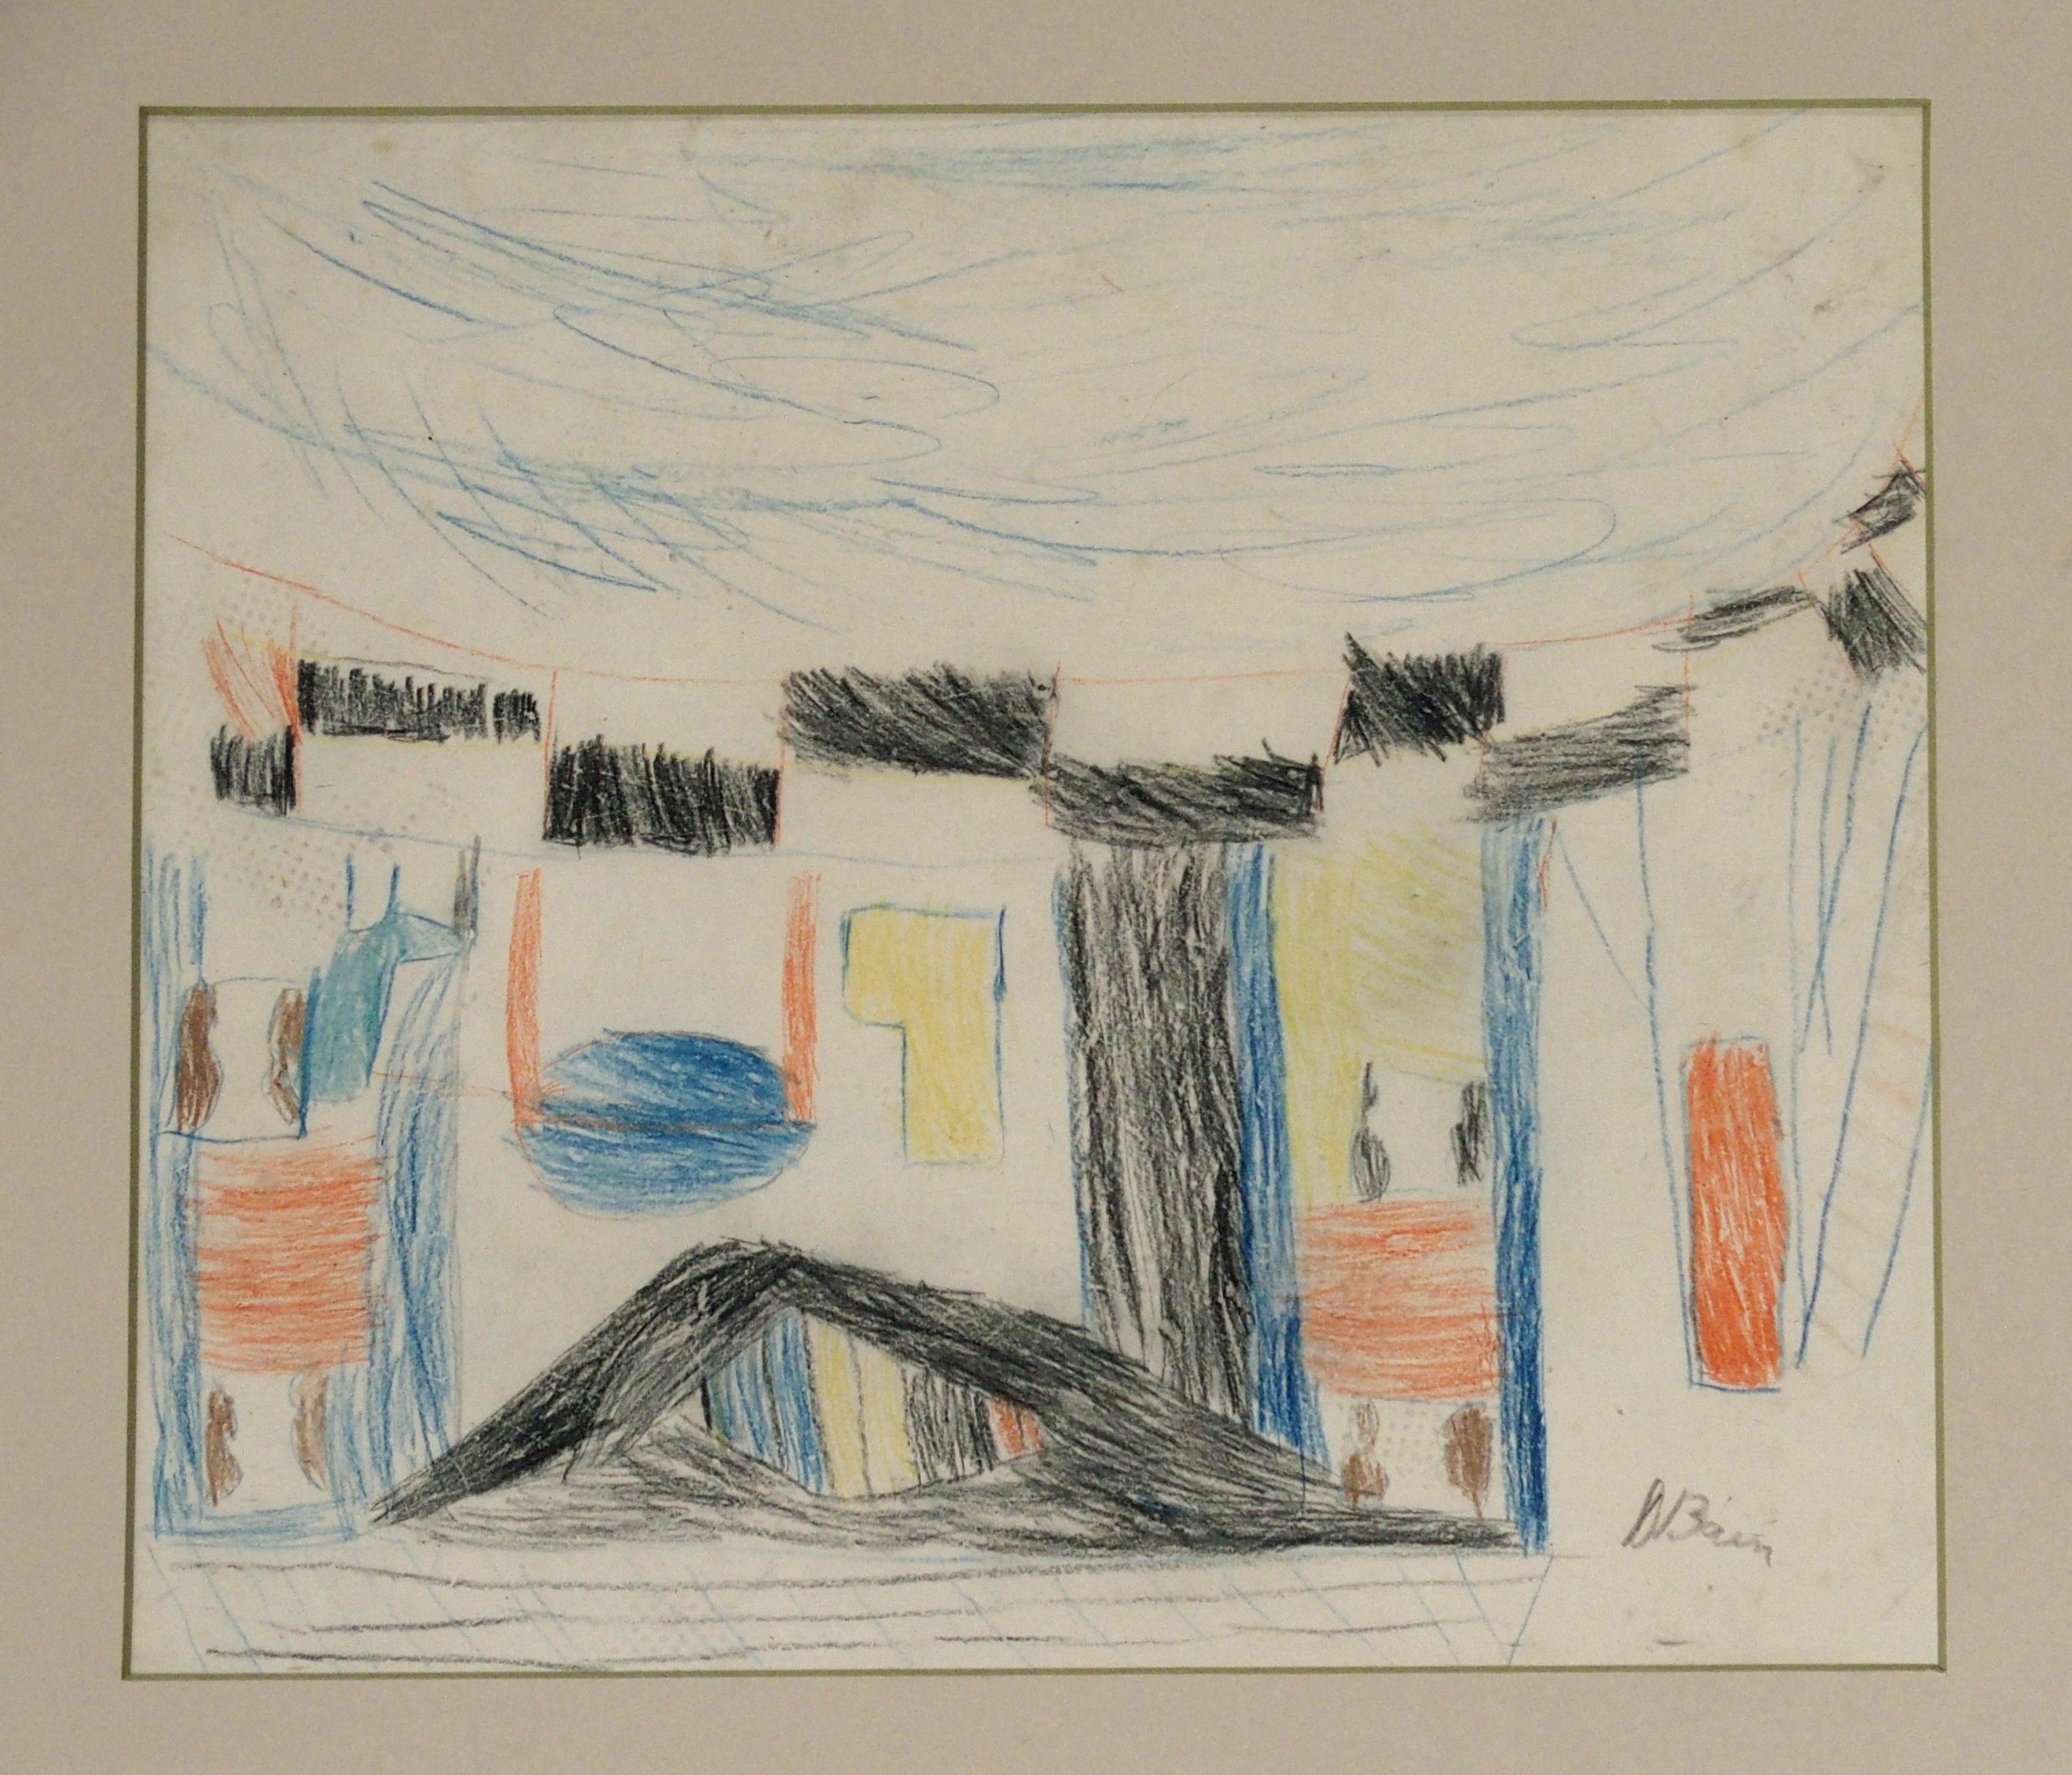 •DONALD BAIN (SCOTTISH 1904-1979) UNTITLED SKETCH crayon, signed, 25 x 29cm Condition Report: